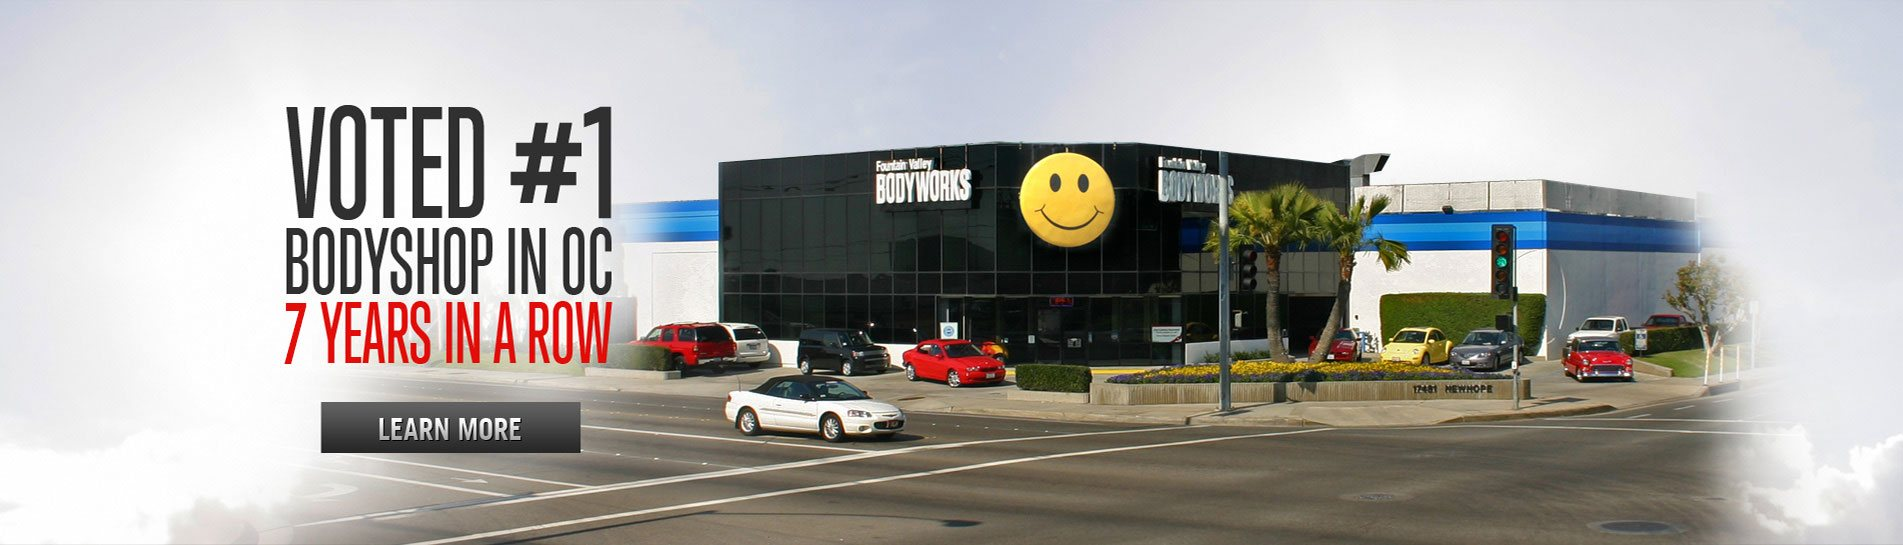 Voted #1 Bodyshop in oc 7 years in a row